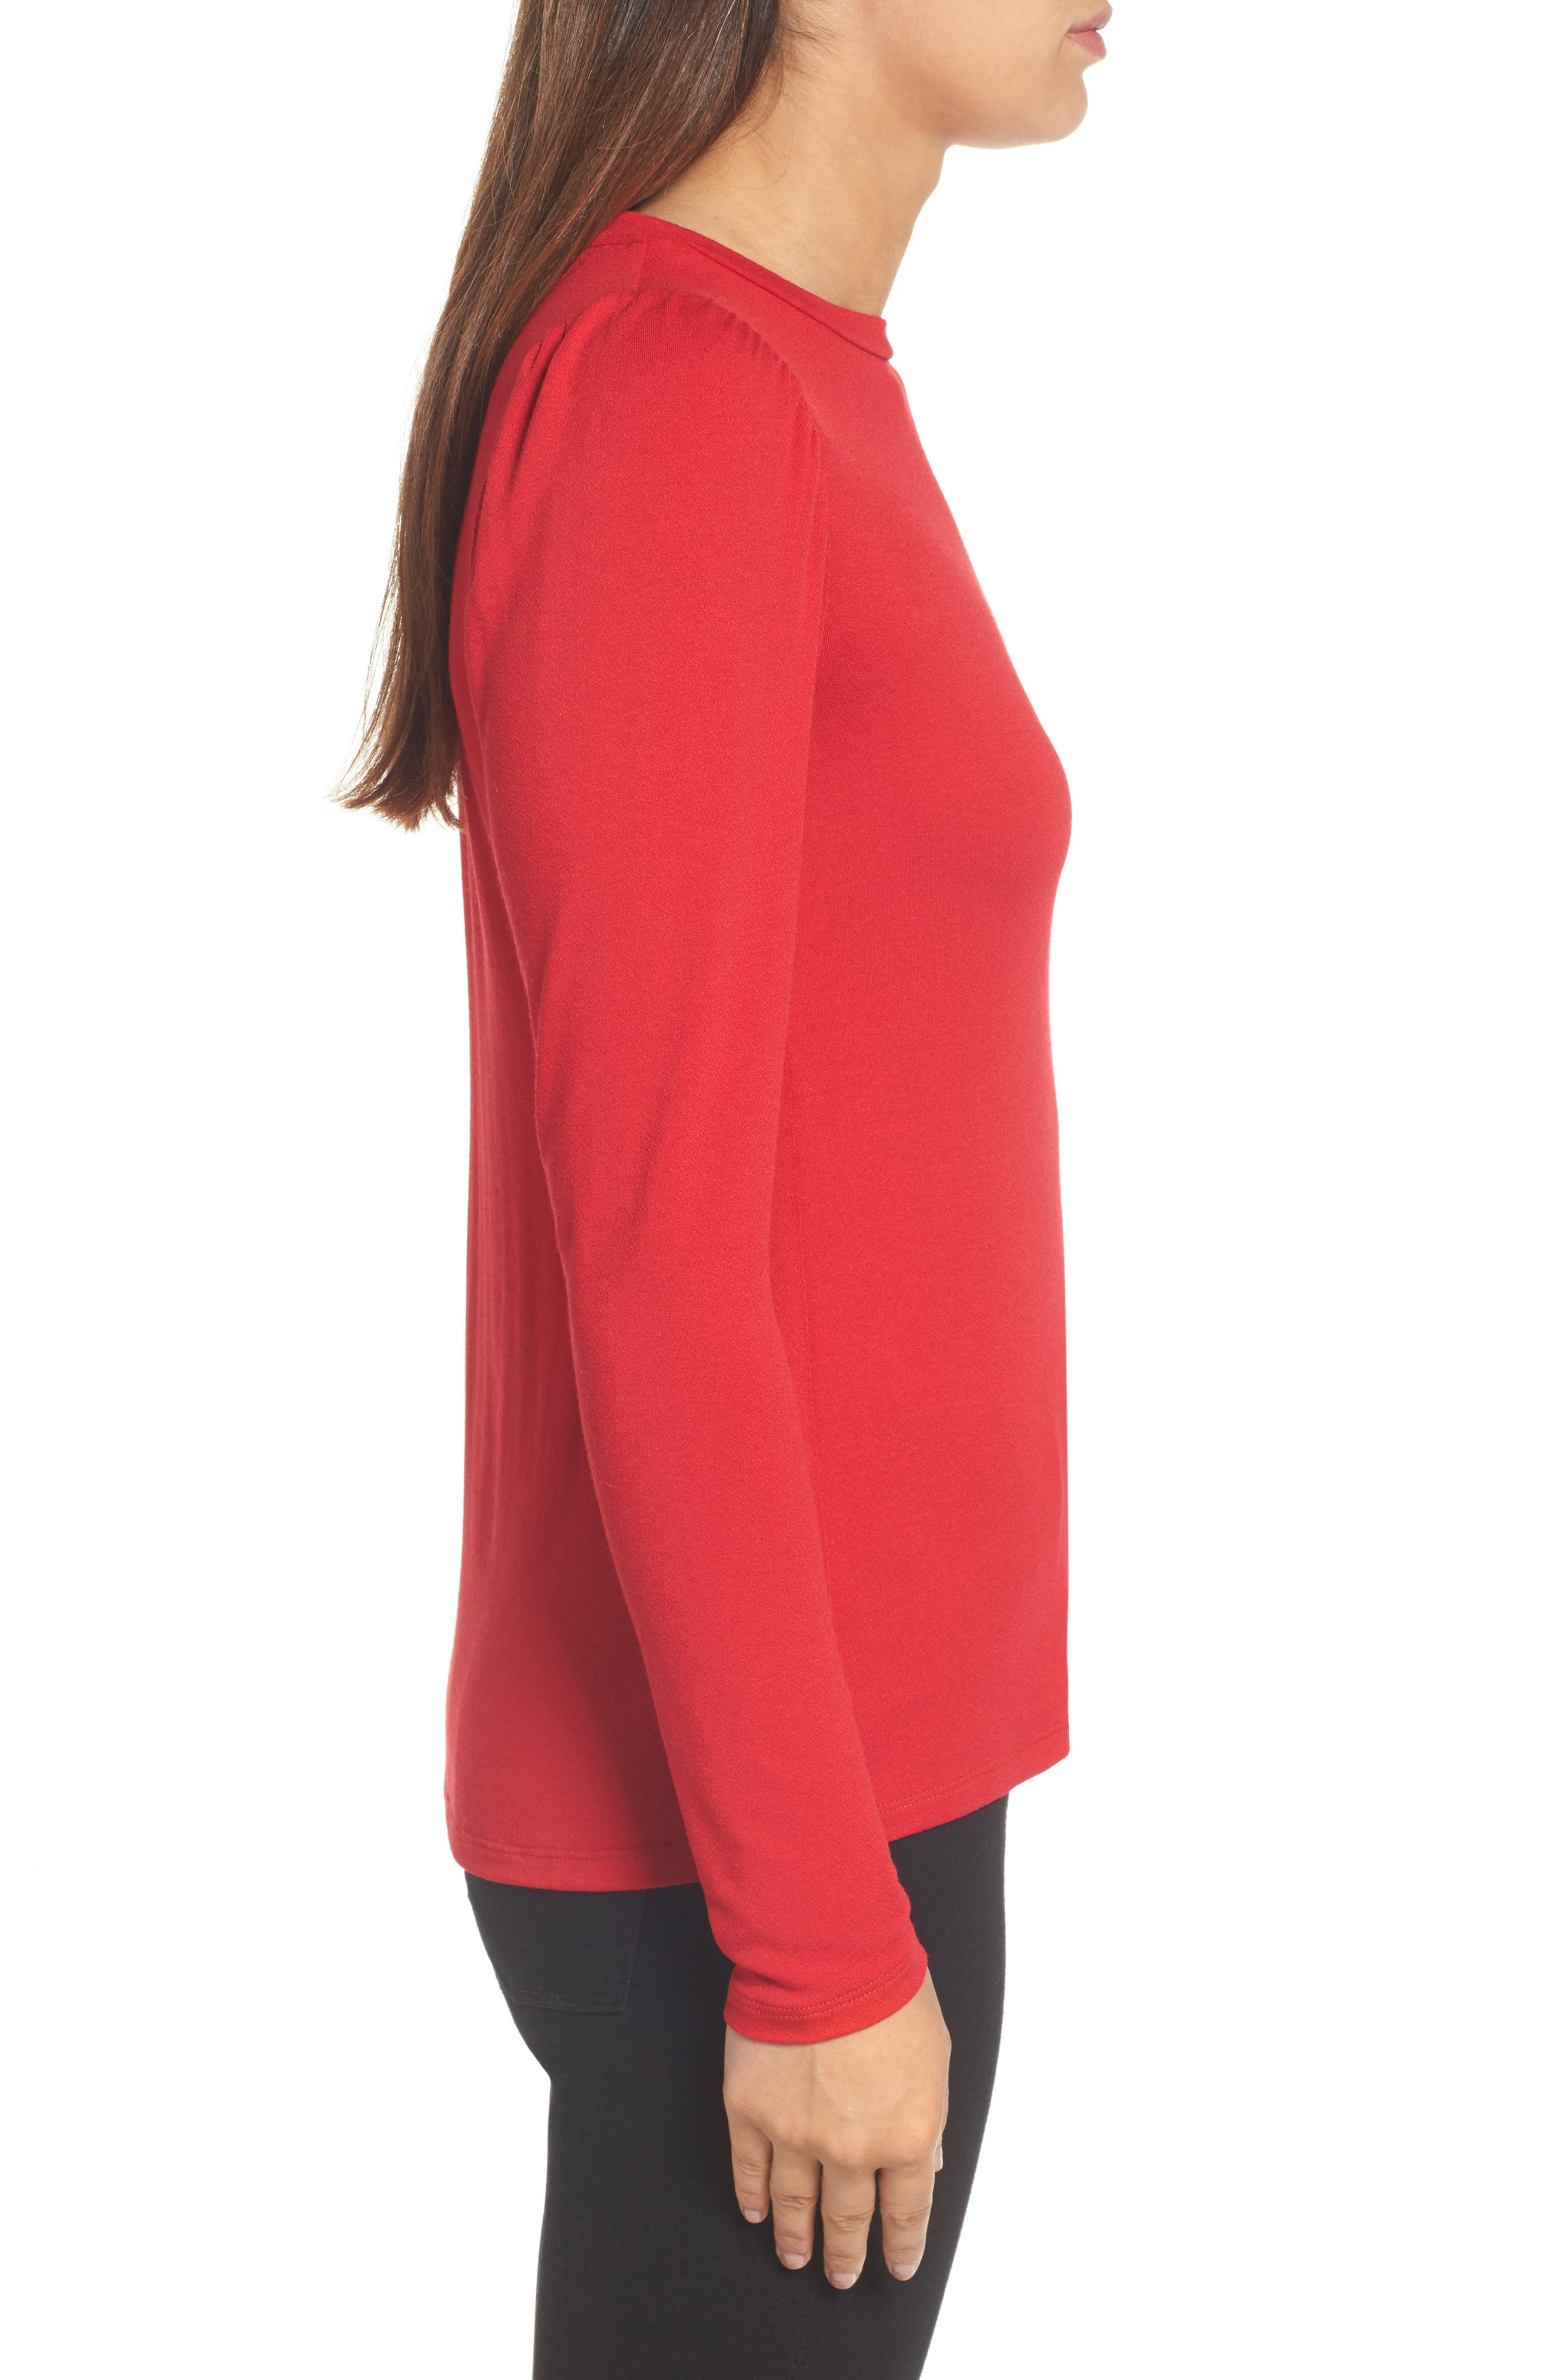 Bishop Knit Top,                             Alternate thumbnail 3, color,                             Red Chili